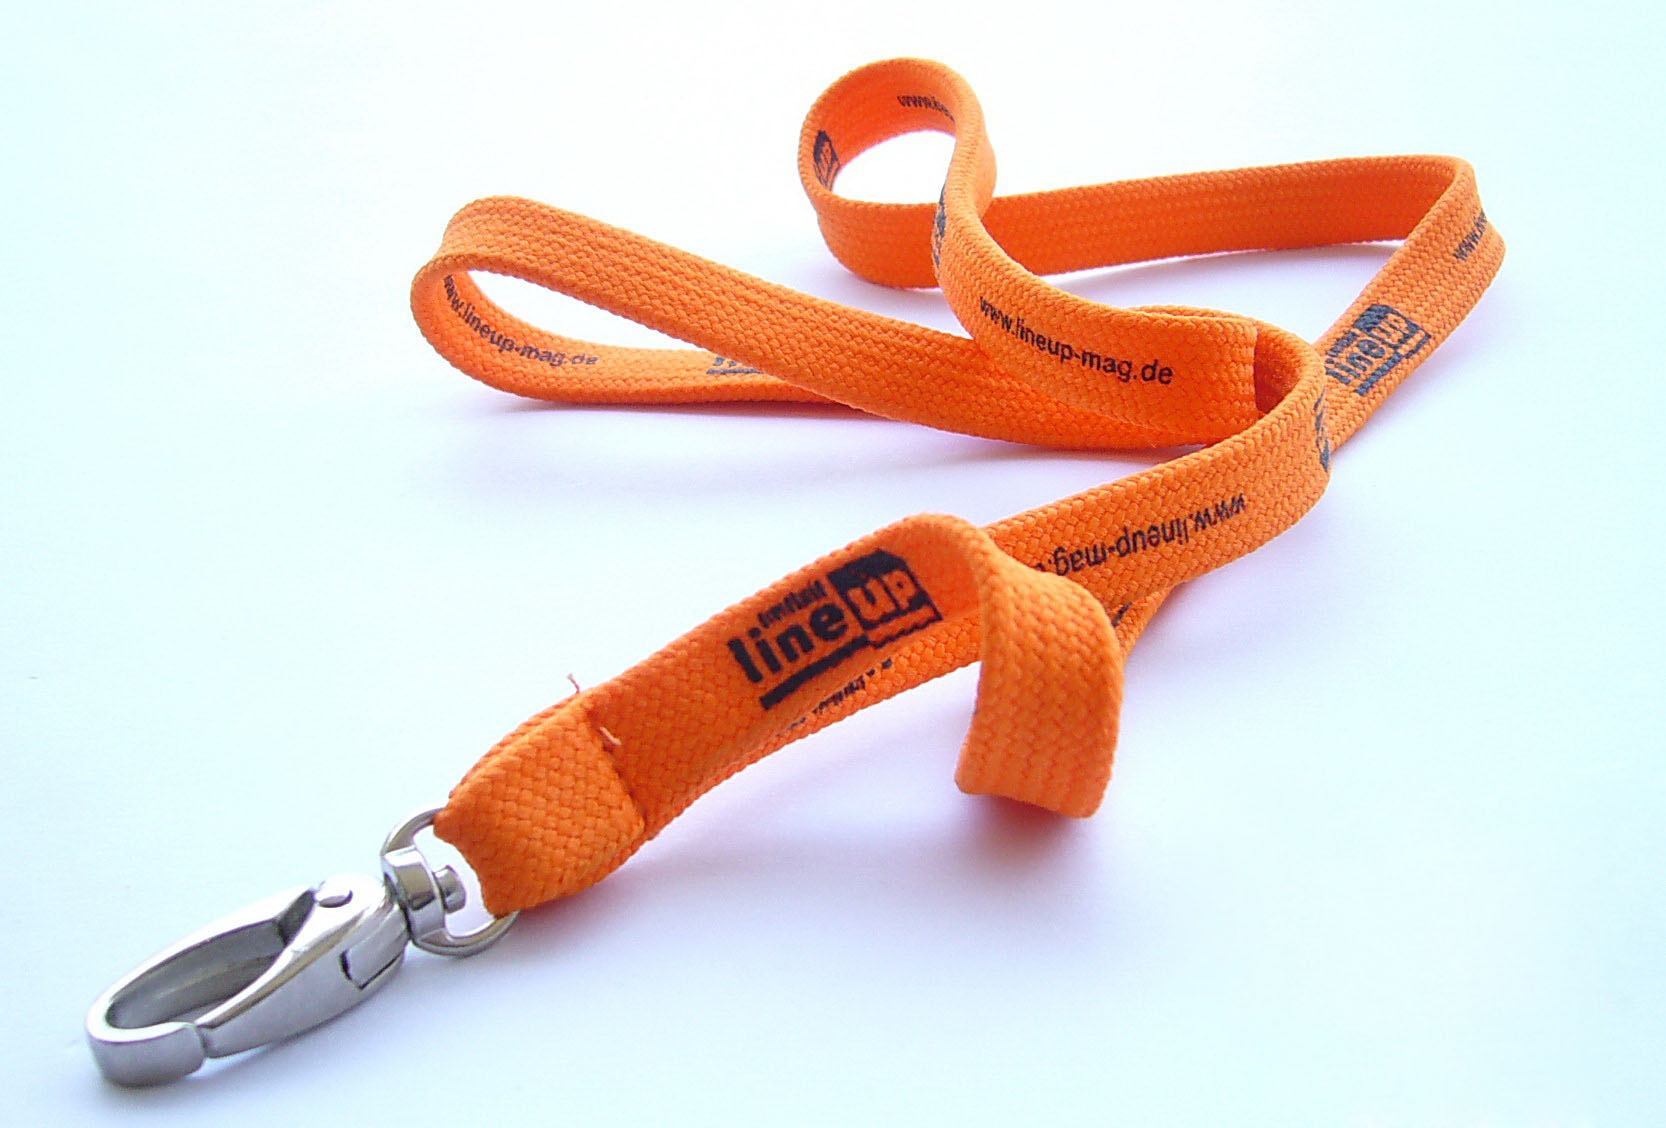 Tubular cotton lanyard with nickel plated swivel oval hook